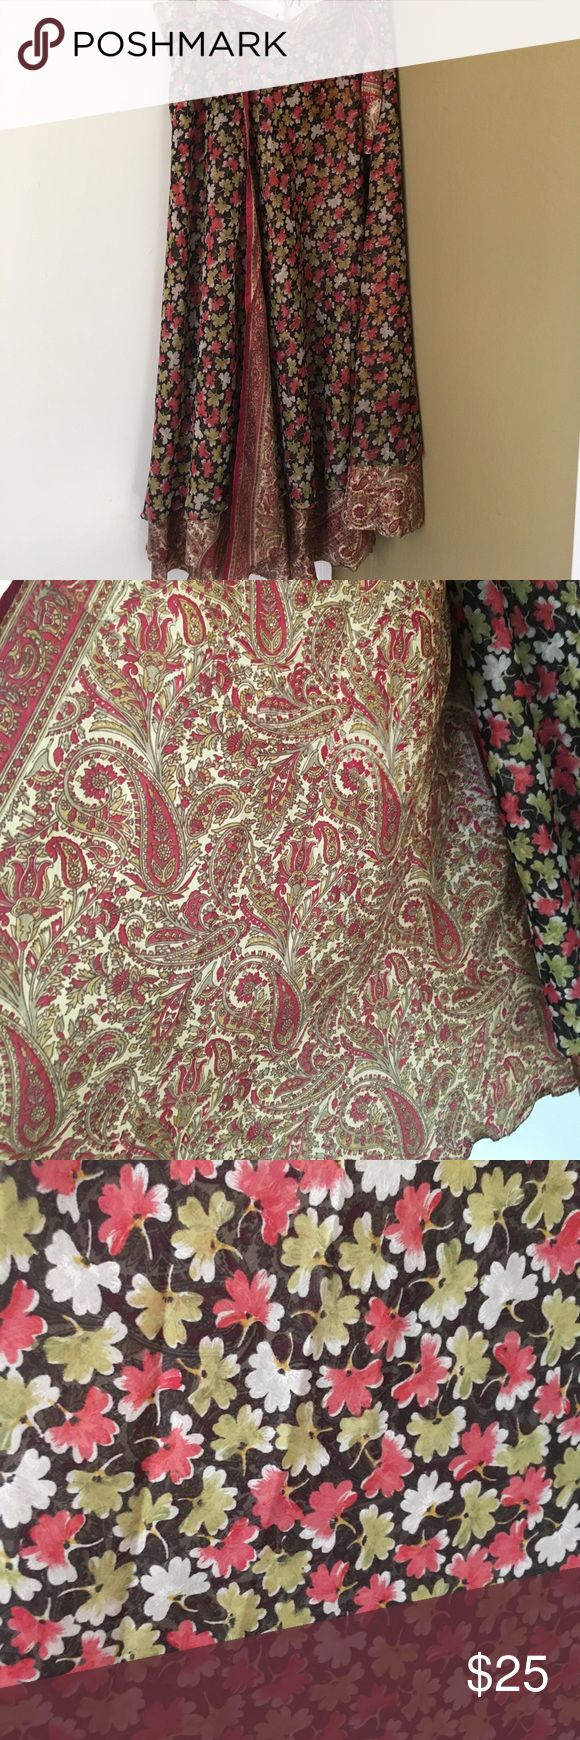 invitation to wedding ukrainian textiles and traditions%0A Reversible Skirt Dress Wrap